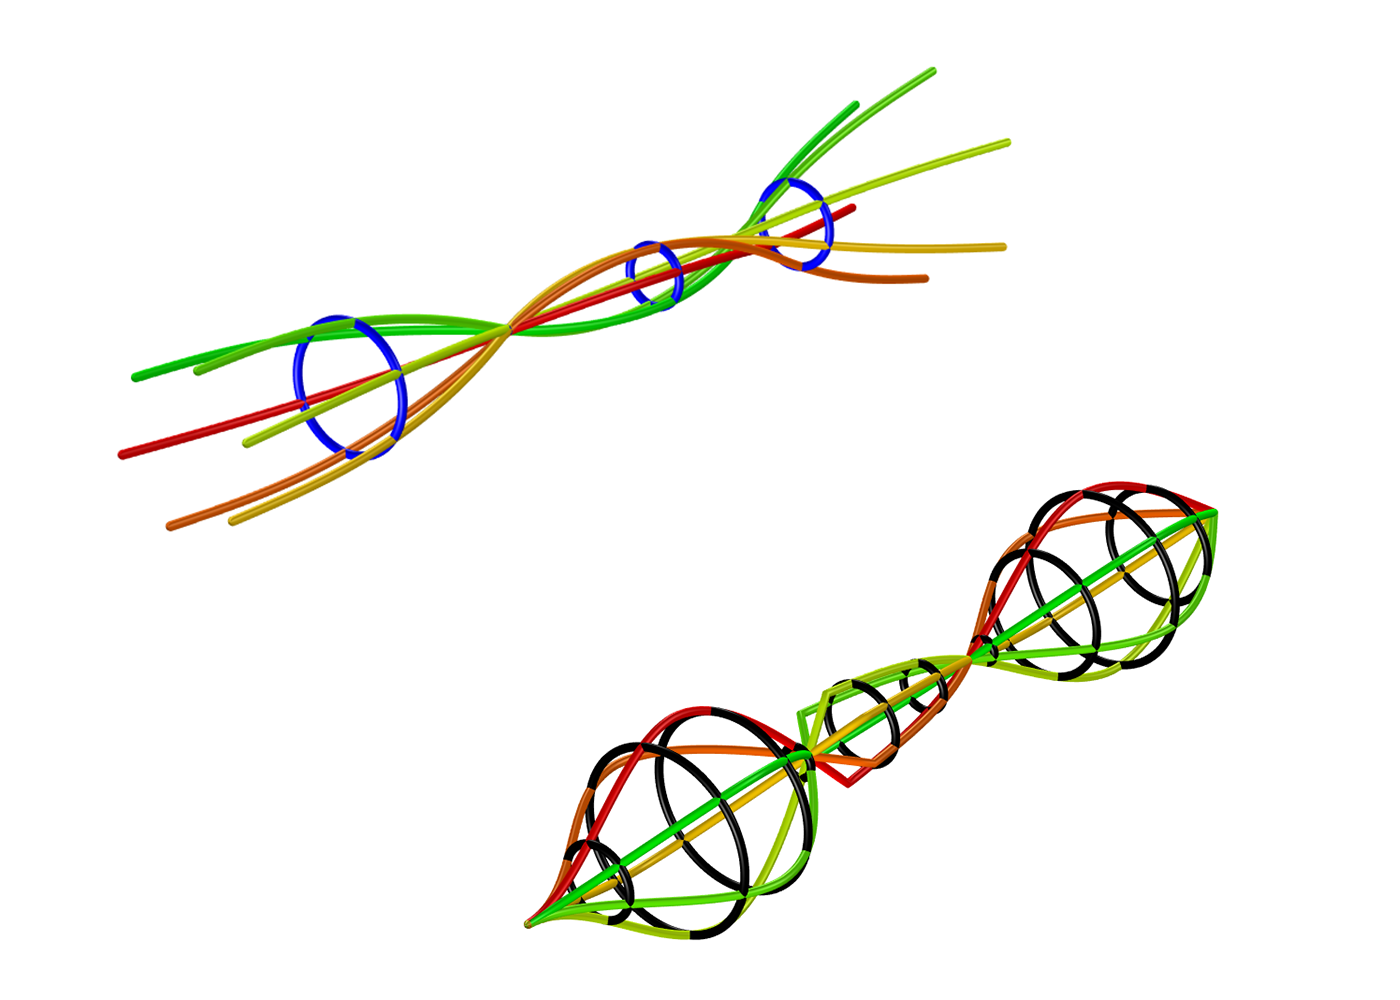 Whirl plots are used in the analyses of rotating machine rotors that are simulated using beam elements. The path traveled by the components, such as bearings and disks, can also be included in such plots.